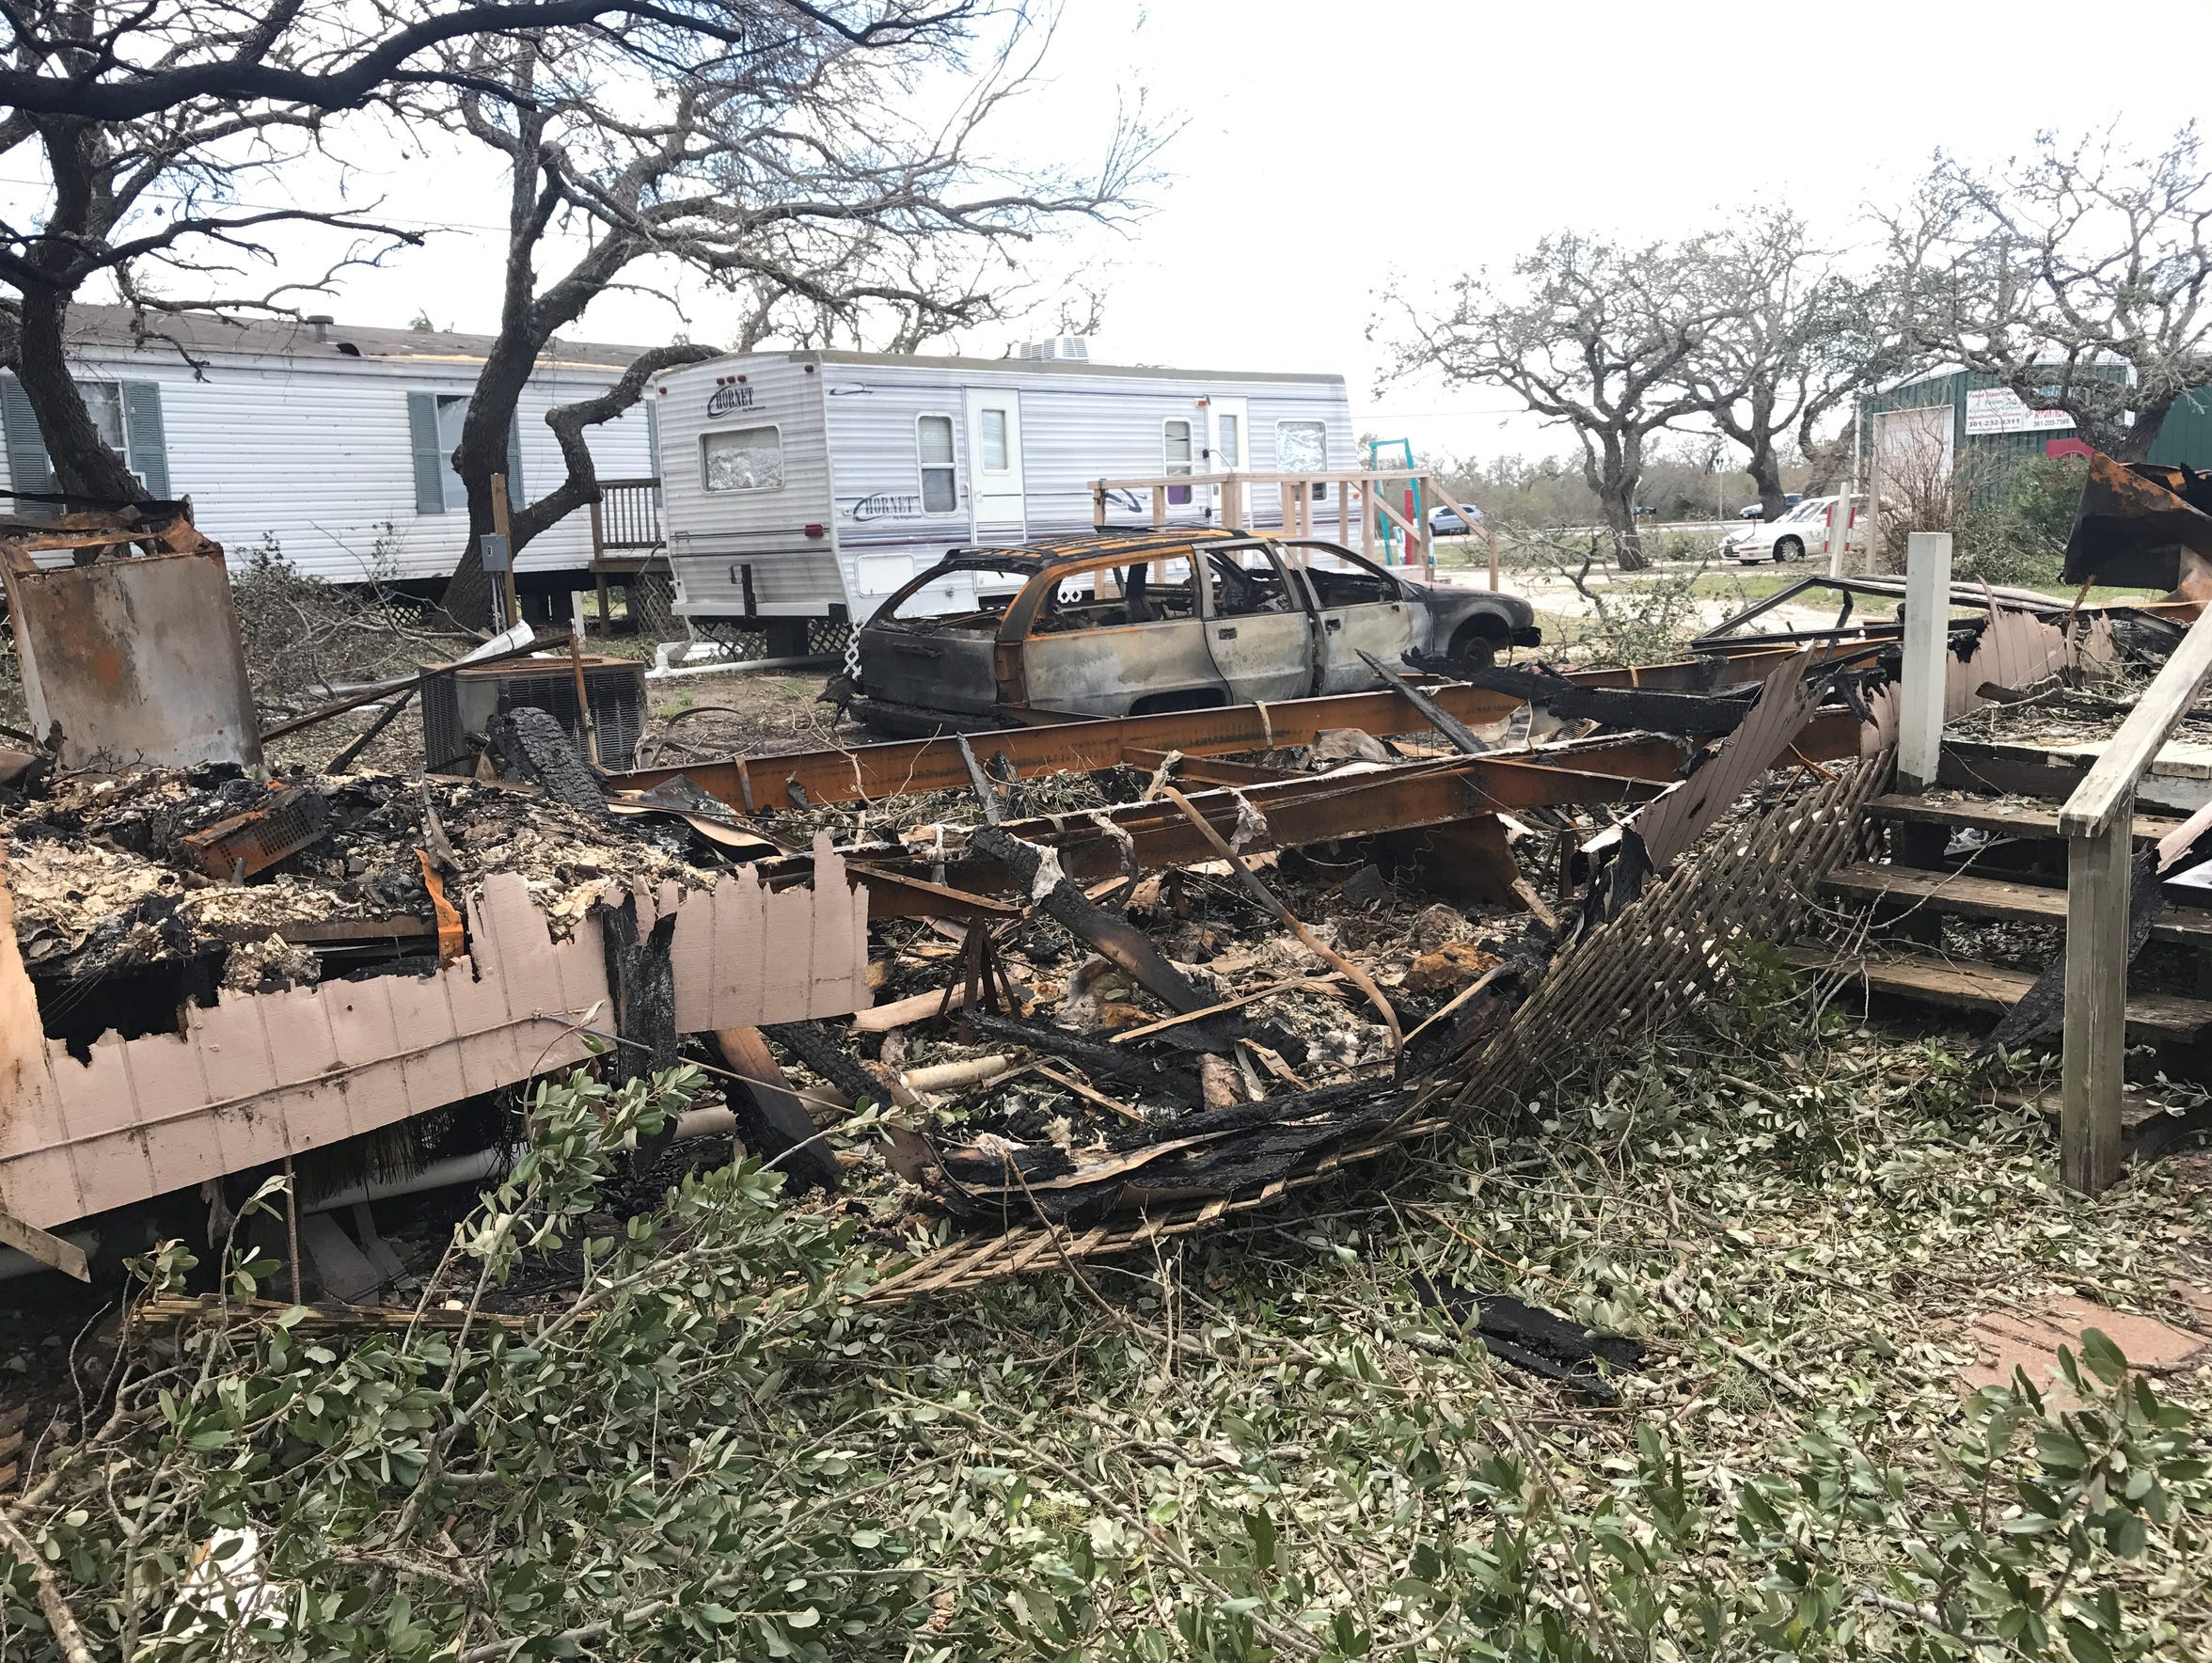 This trailer was destroyed in a fire shortly after